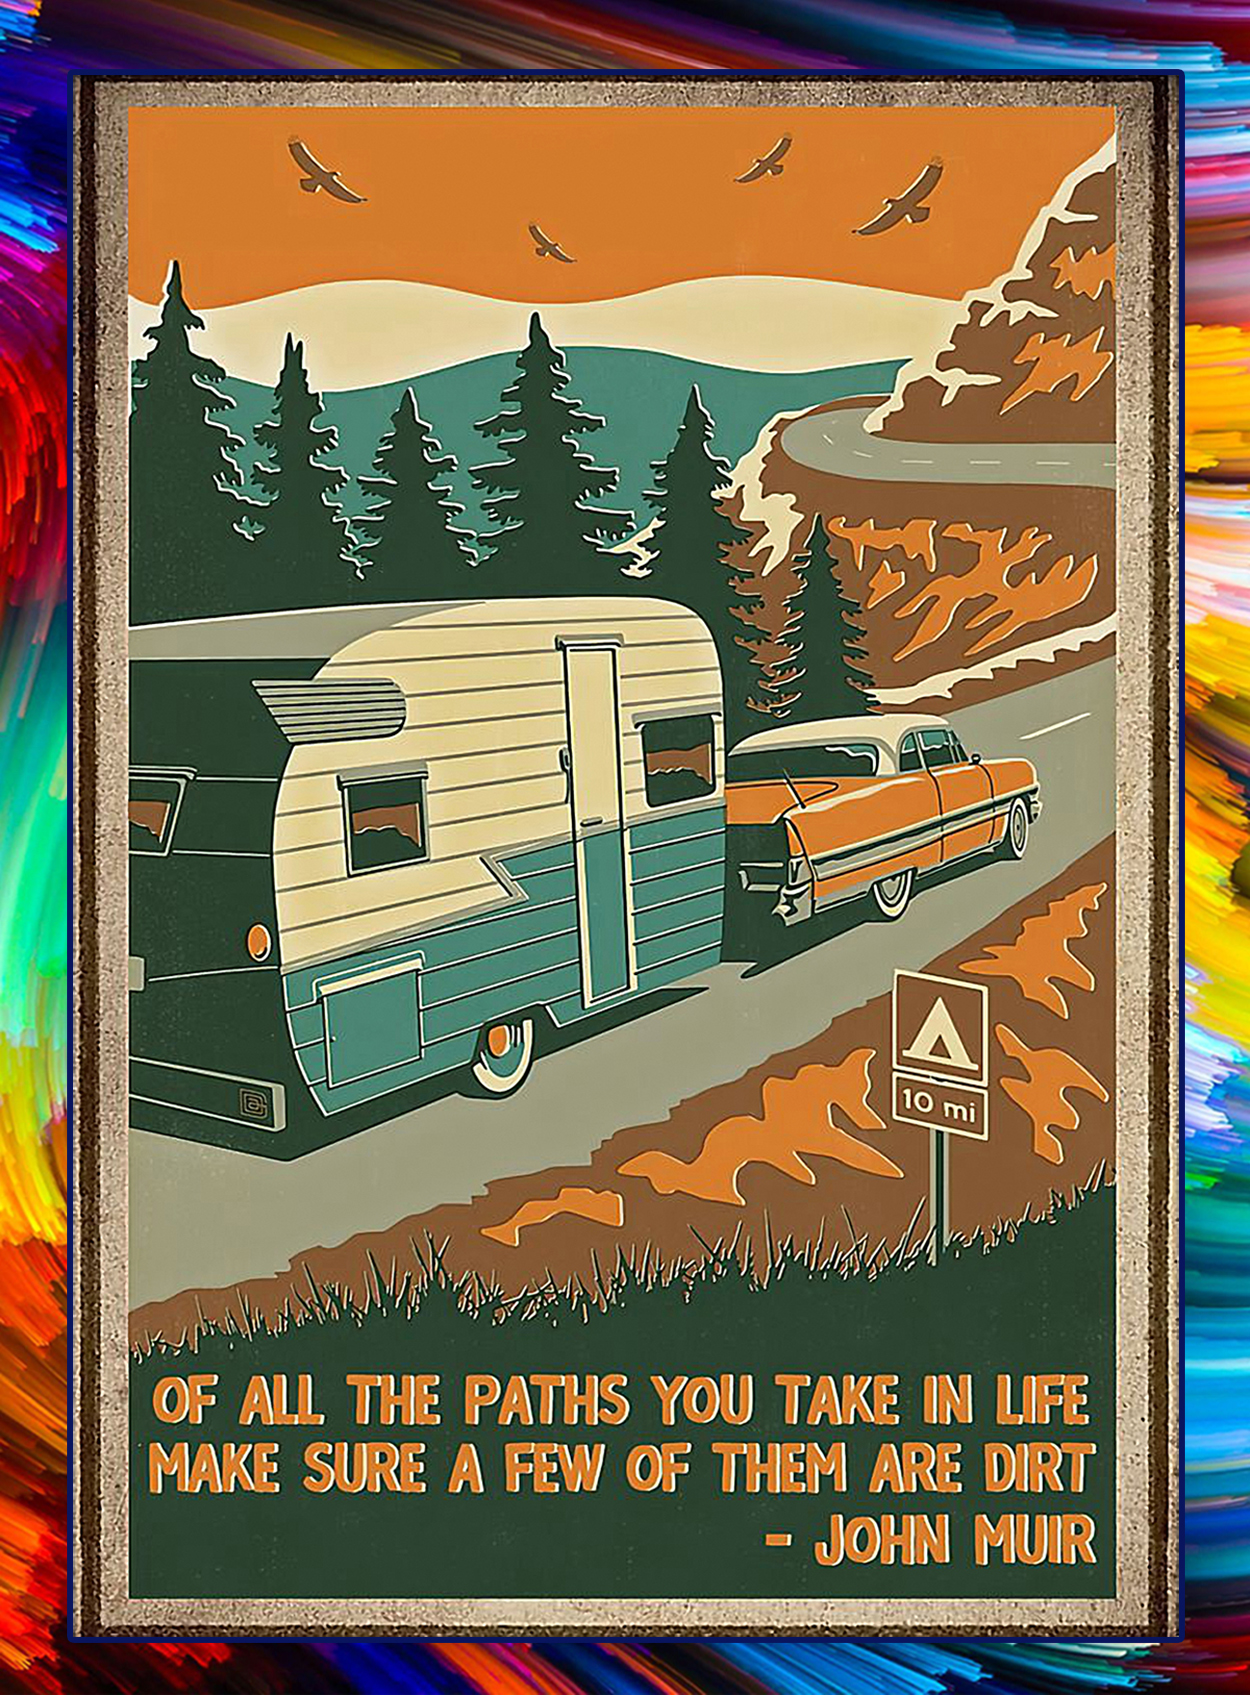 Of all the paths you take in life john muir poster - A3